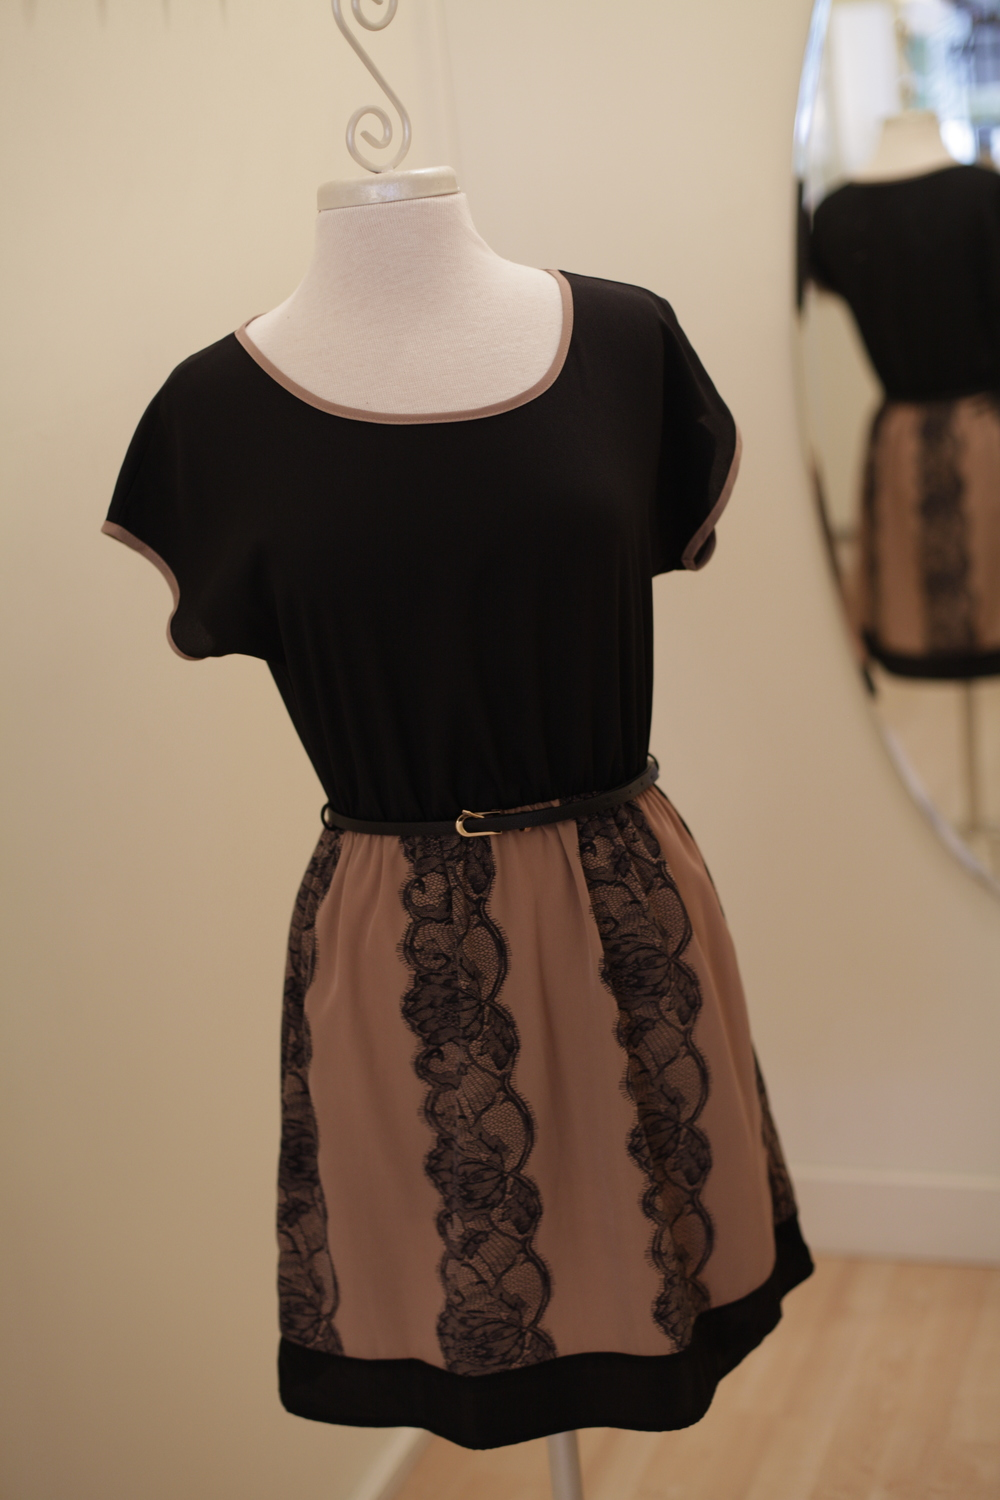 You can't go wrong with this little number. It's a perfect option for a holiday work party or a family gathering. The black lace and skinny belt add just enough to keep it sophisticated and sassy.